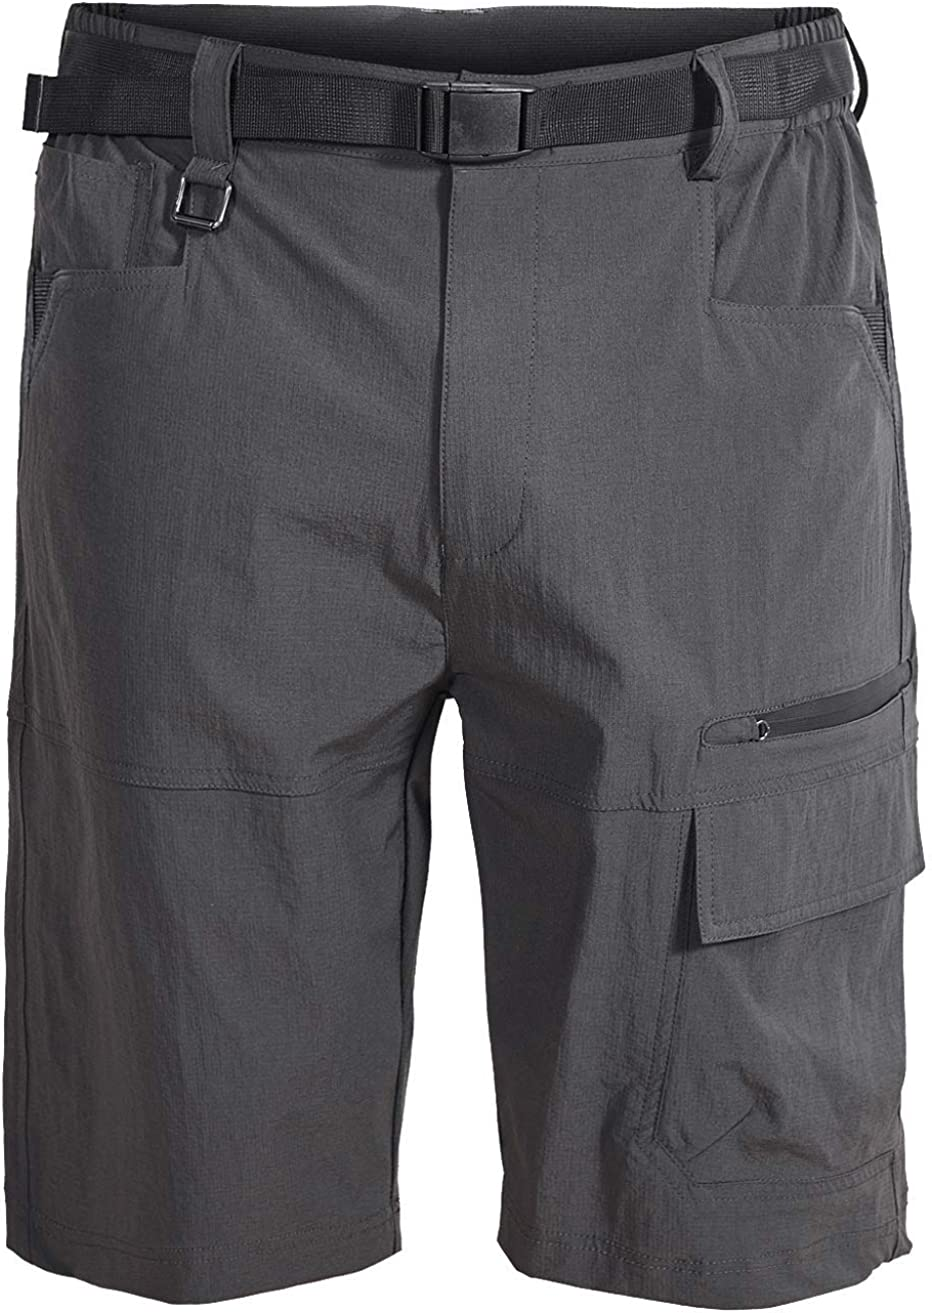 VtuAOL Mens Outdoor Lightweight Hiking Shorts Quick Dry Sports Casual Shorts